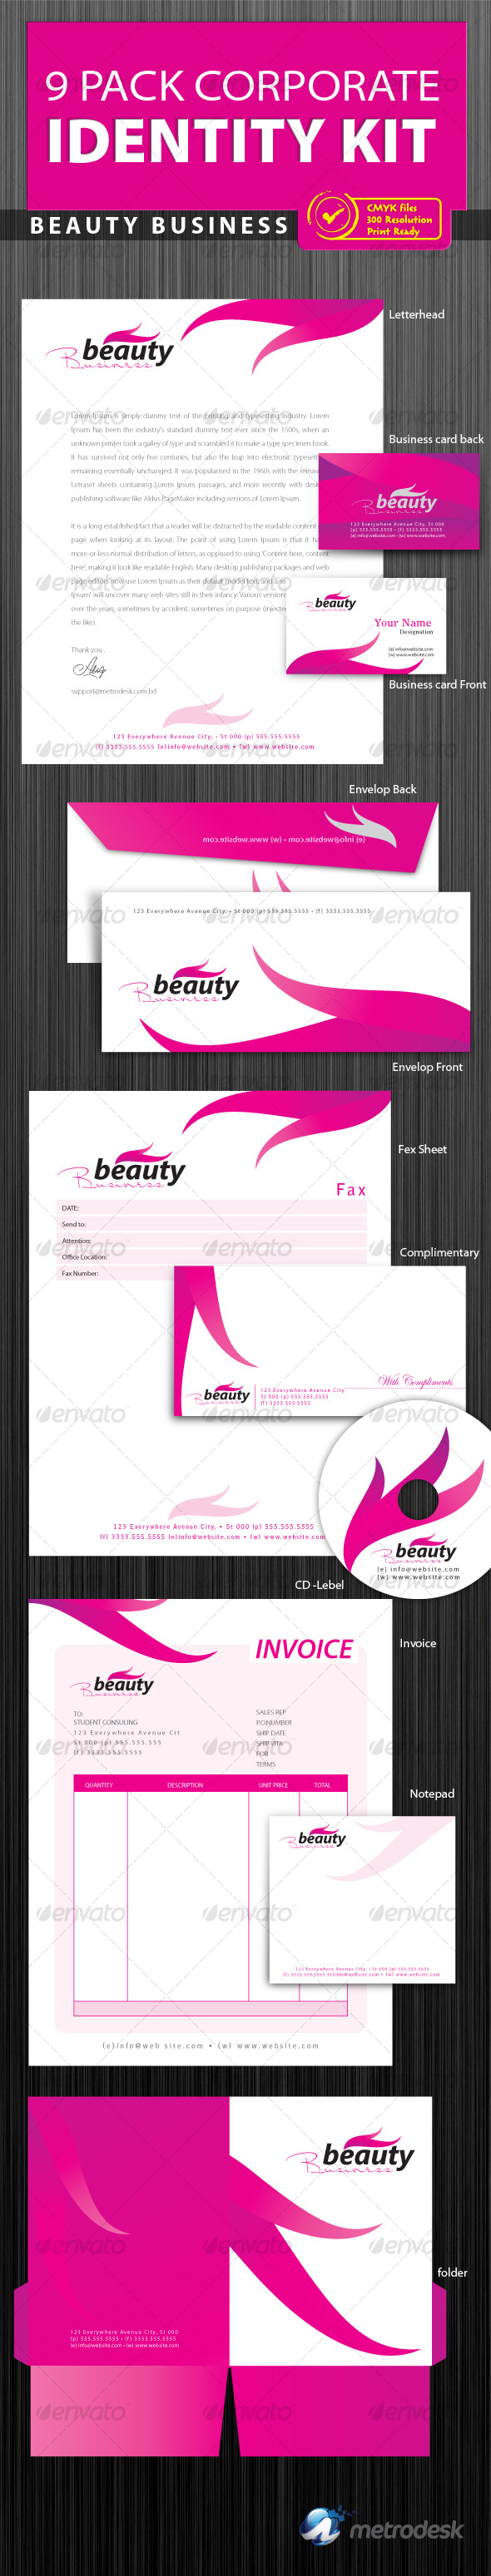 Corporate Identity 9 pack [Print Ready] - Stationery Print Templates